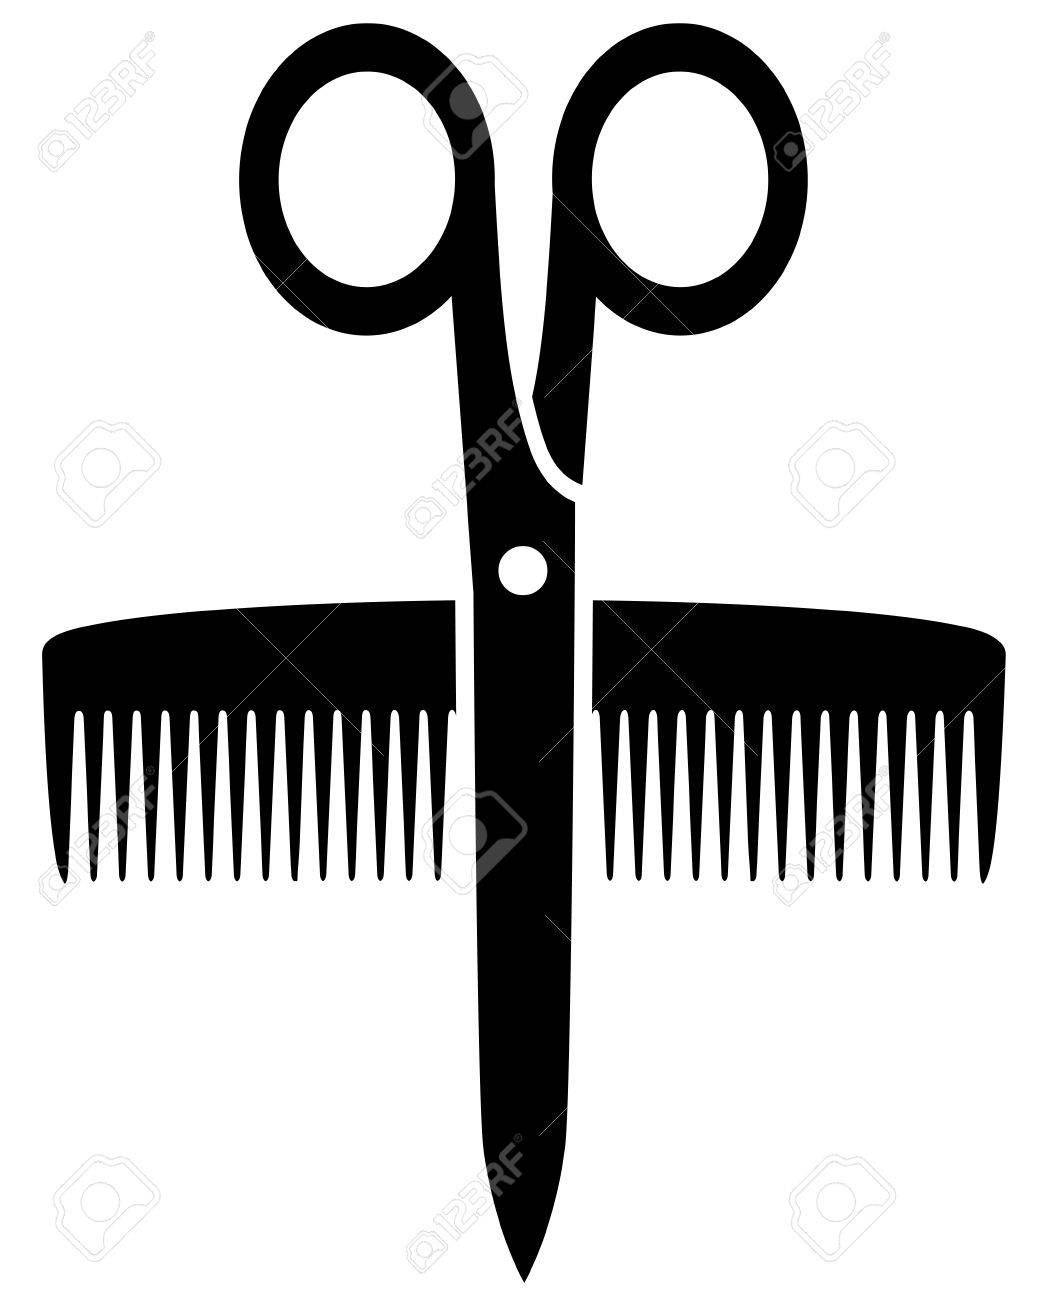 Isolated Icon With Scissors And Comb Silhouette Royalty Free ...